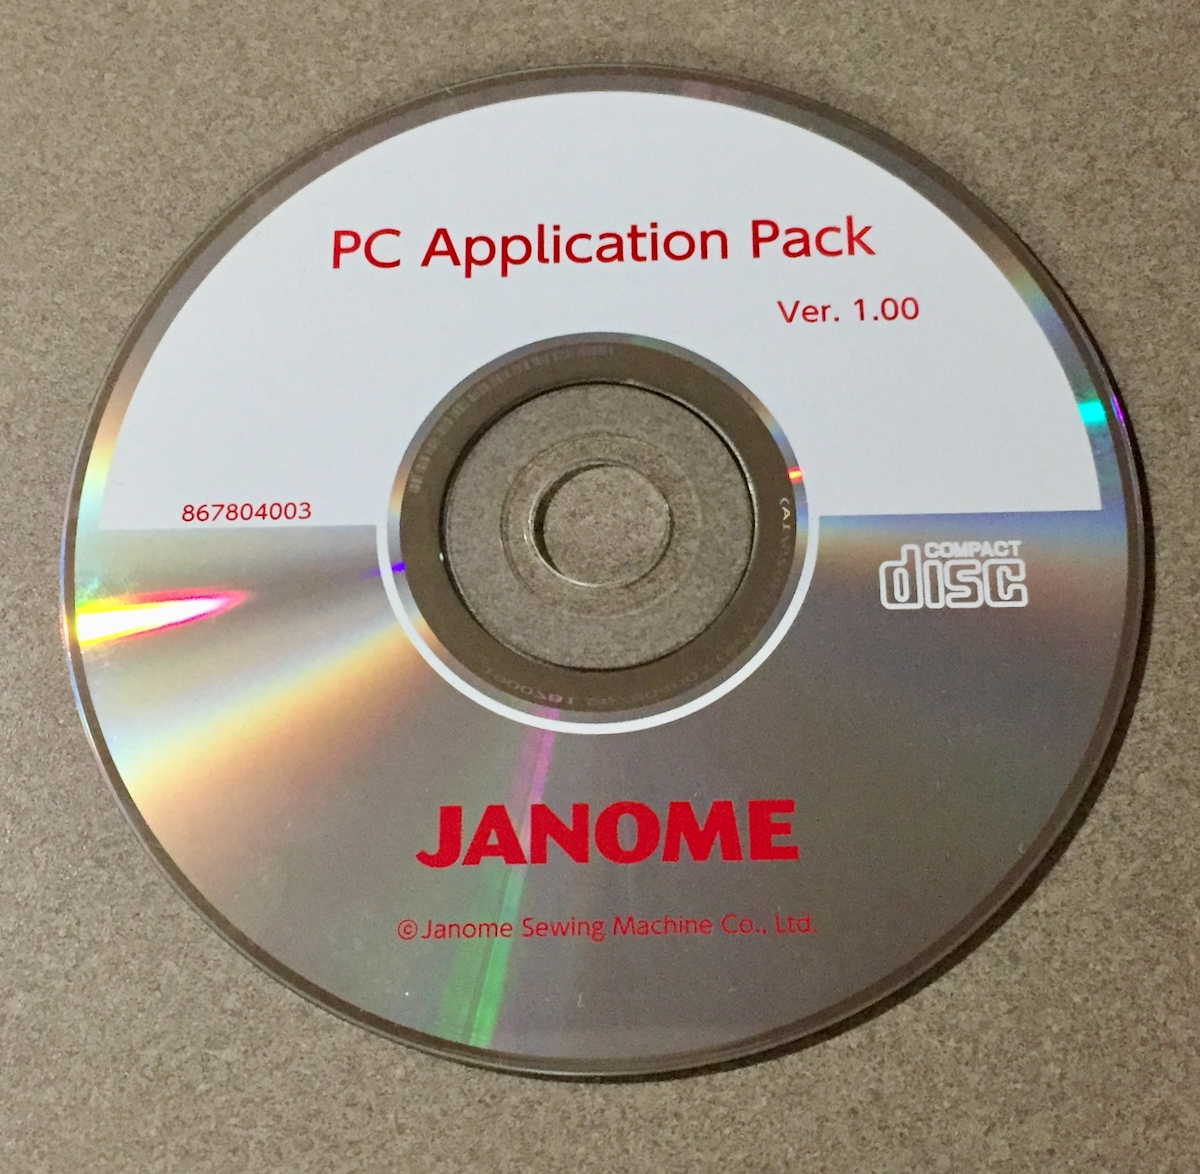 PC Application Pack disc - 1